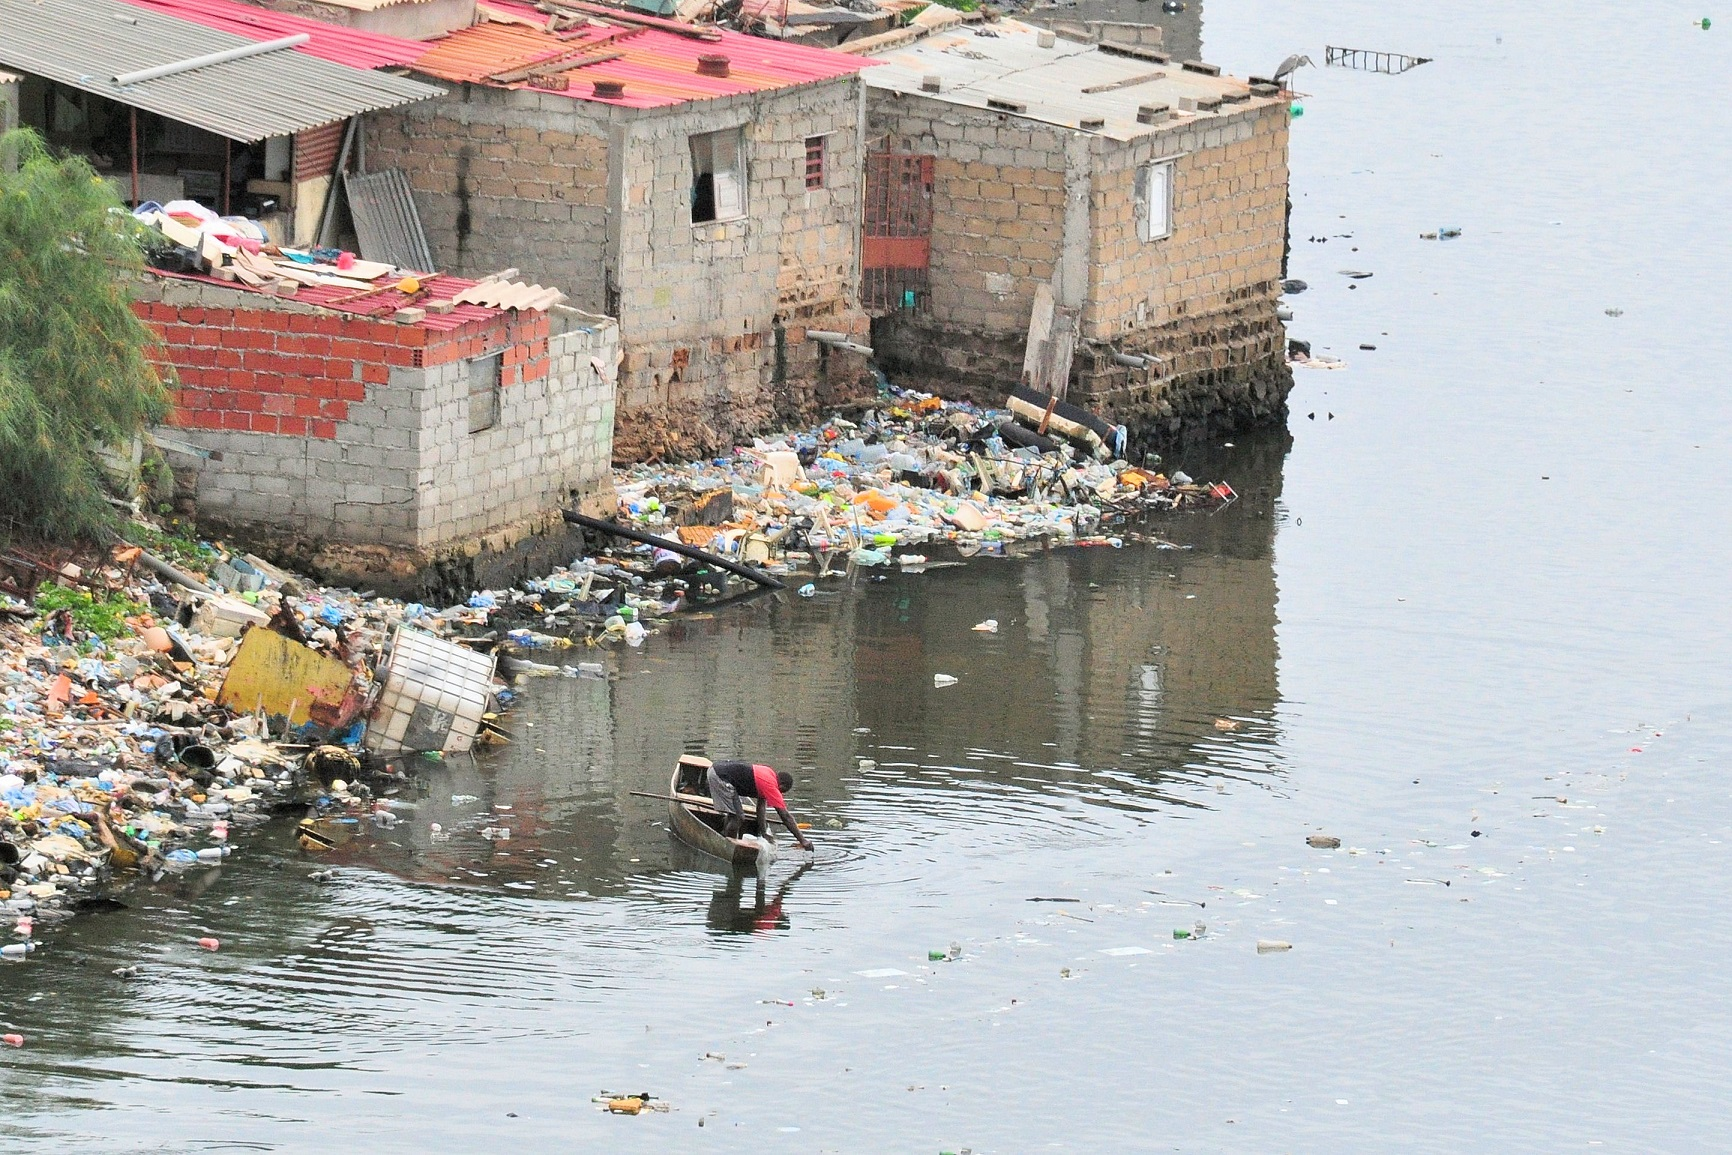 Not far from the bustling streets and high rise buildings of Angola's capital city of  Luanda , this man catches fish in a polluted lagoon surrounded by shanty towns.